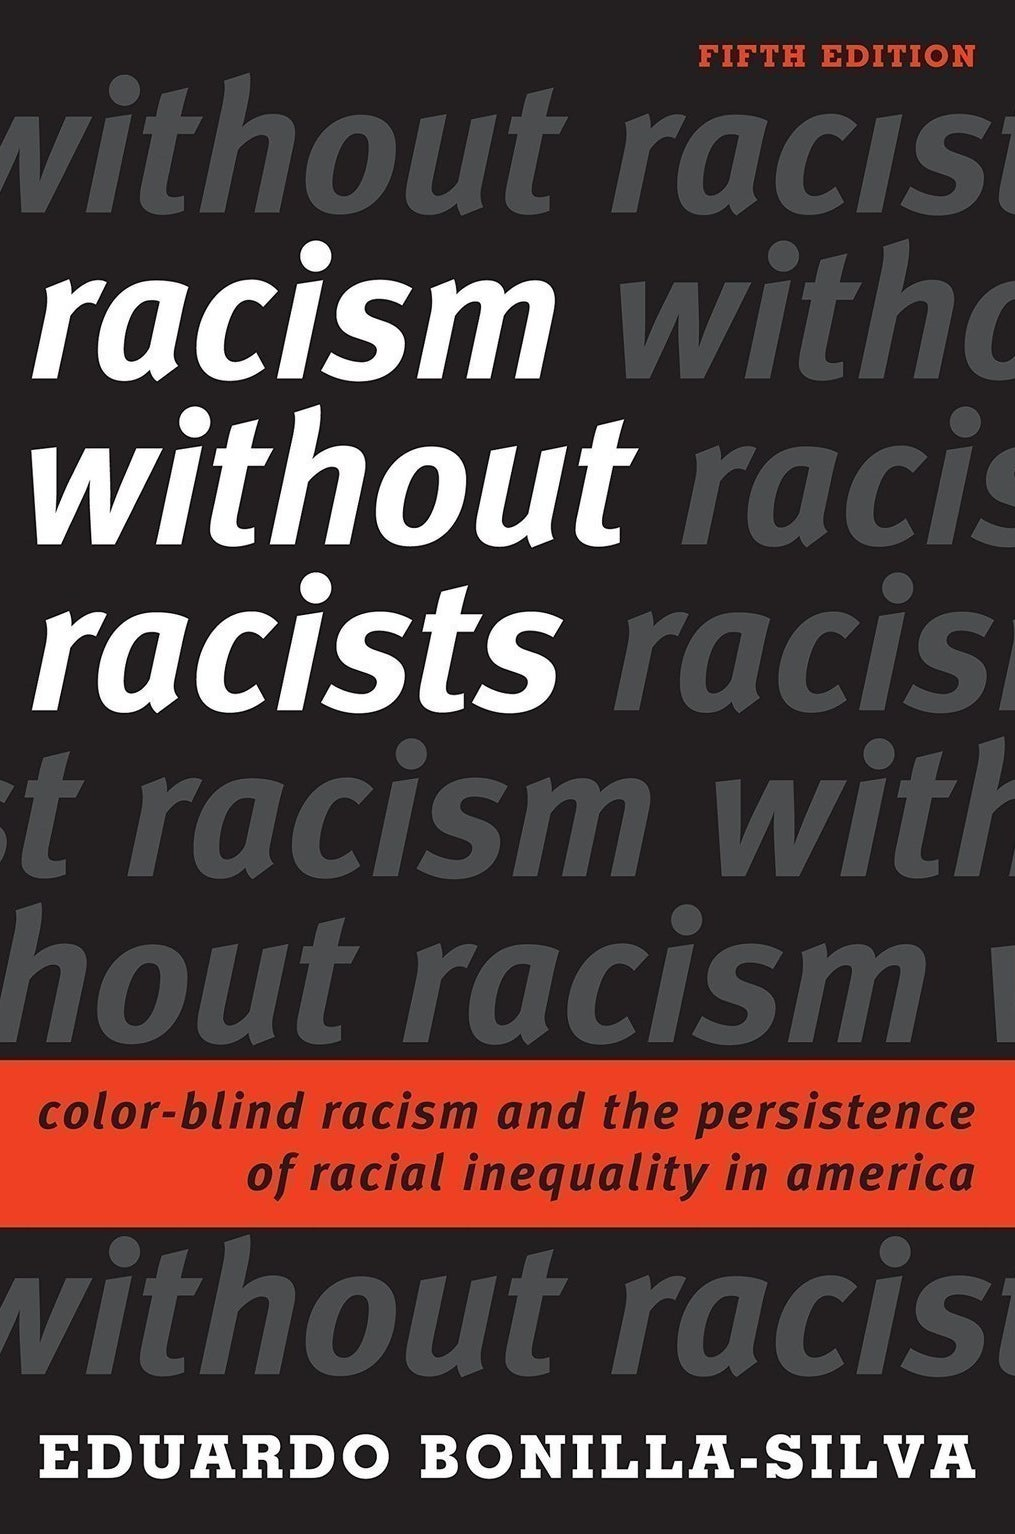 """possessive investment in whiteness The phrase """"a possessive investment in whiteness"""" is taken from george lipsitz's (1995) seminal paper here i use it as a way to discuss mathematics education's role in perpetually advantaging whiteness."""